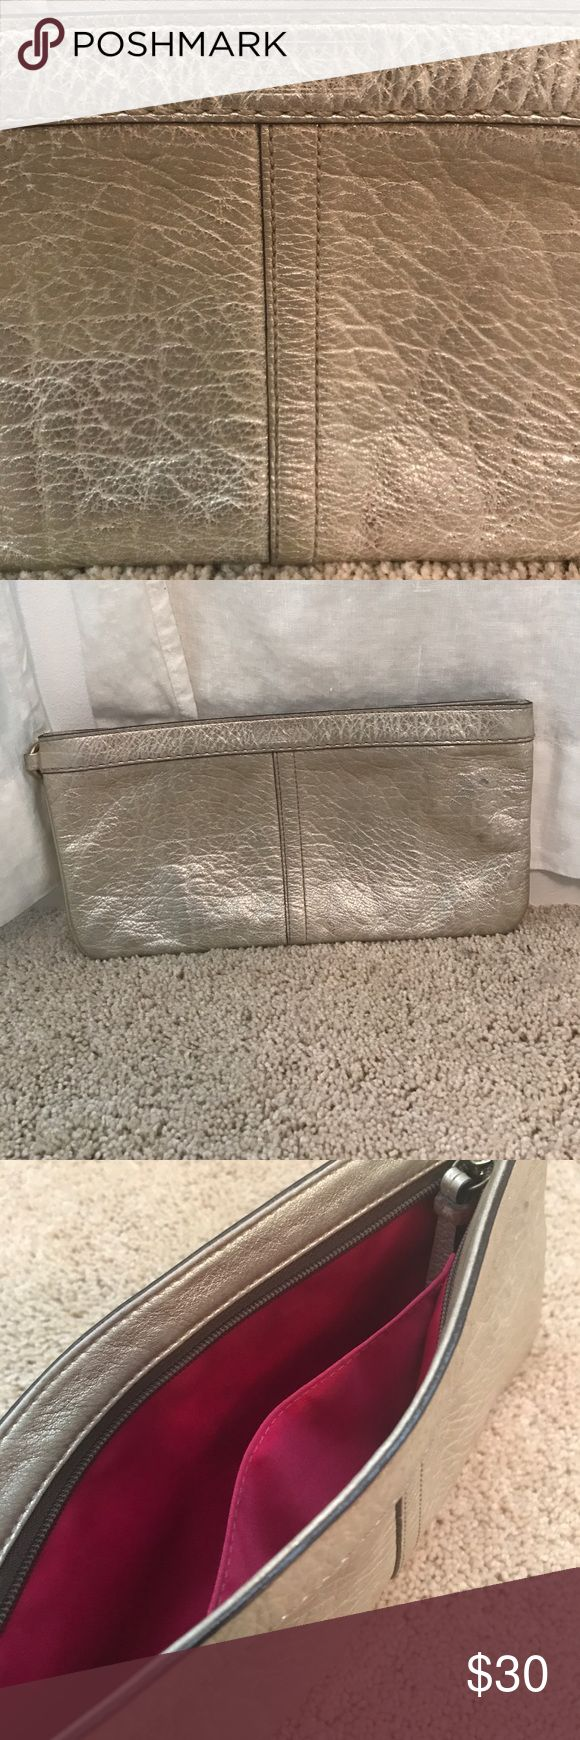 Coach Clutch in Metallic Gold Gold Coach Clutch with few flaws. Perfect for a night out Coach Bags Clutches & Wristlets